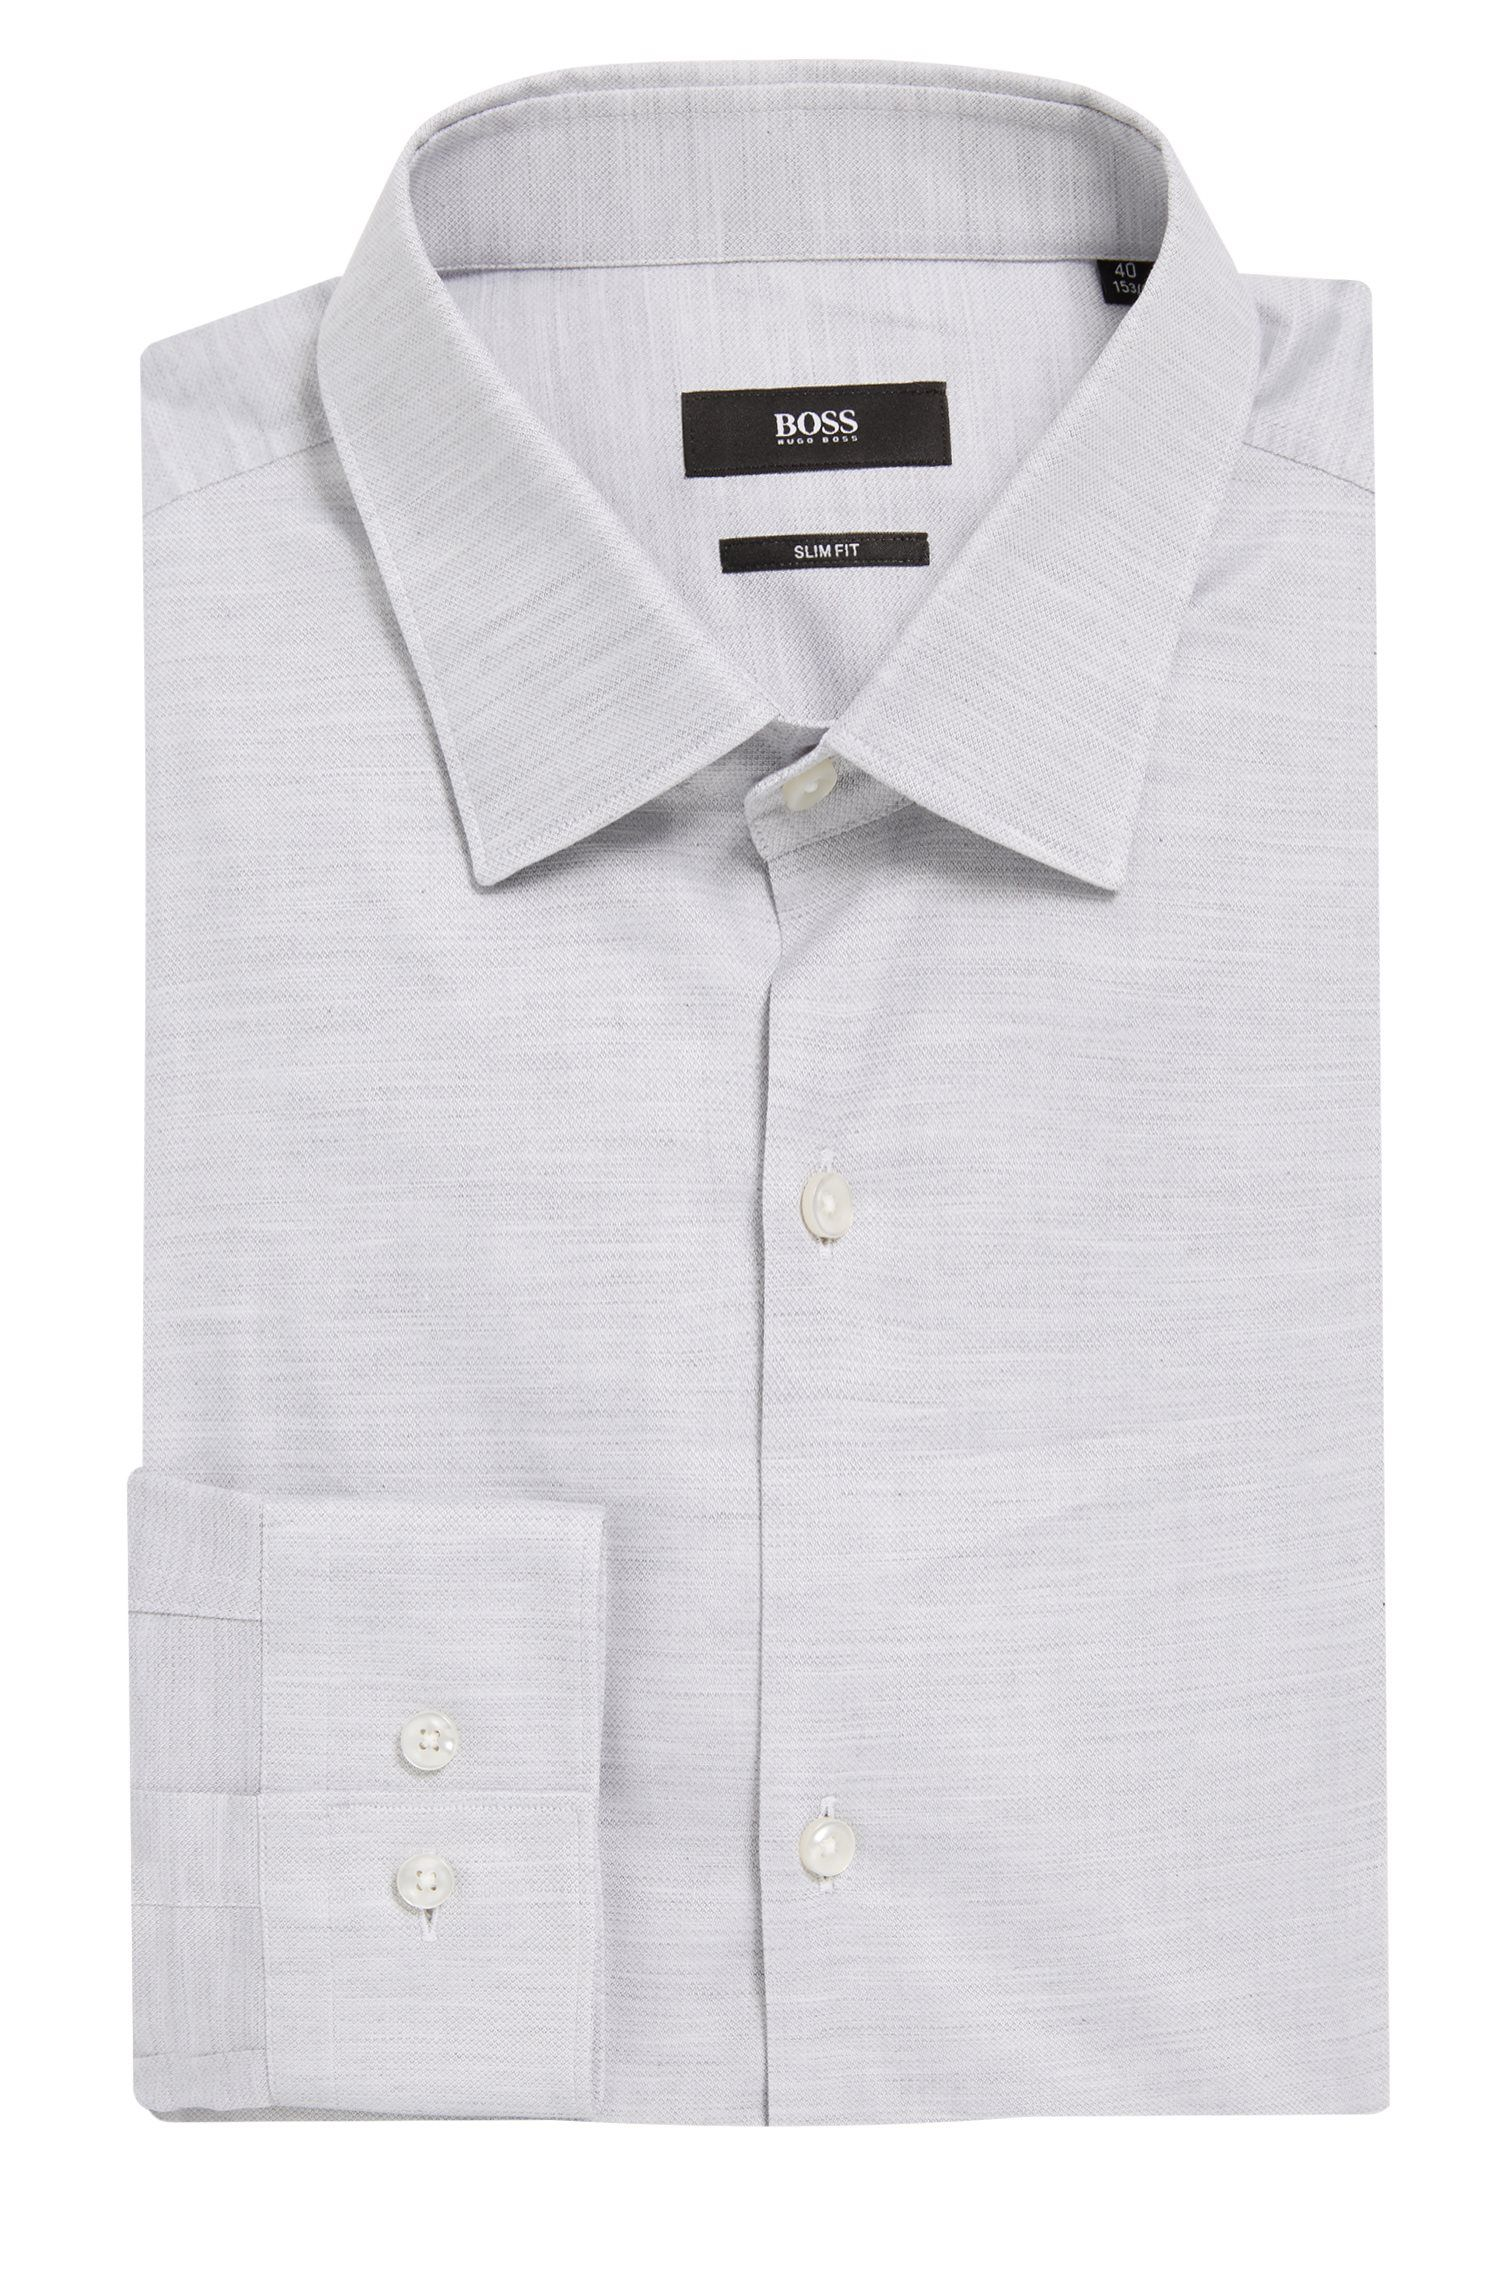 Yarn-Dyed Cotton Oxford Dress Shirt, Slim Fit | Ismo